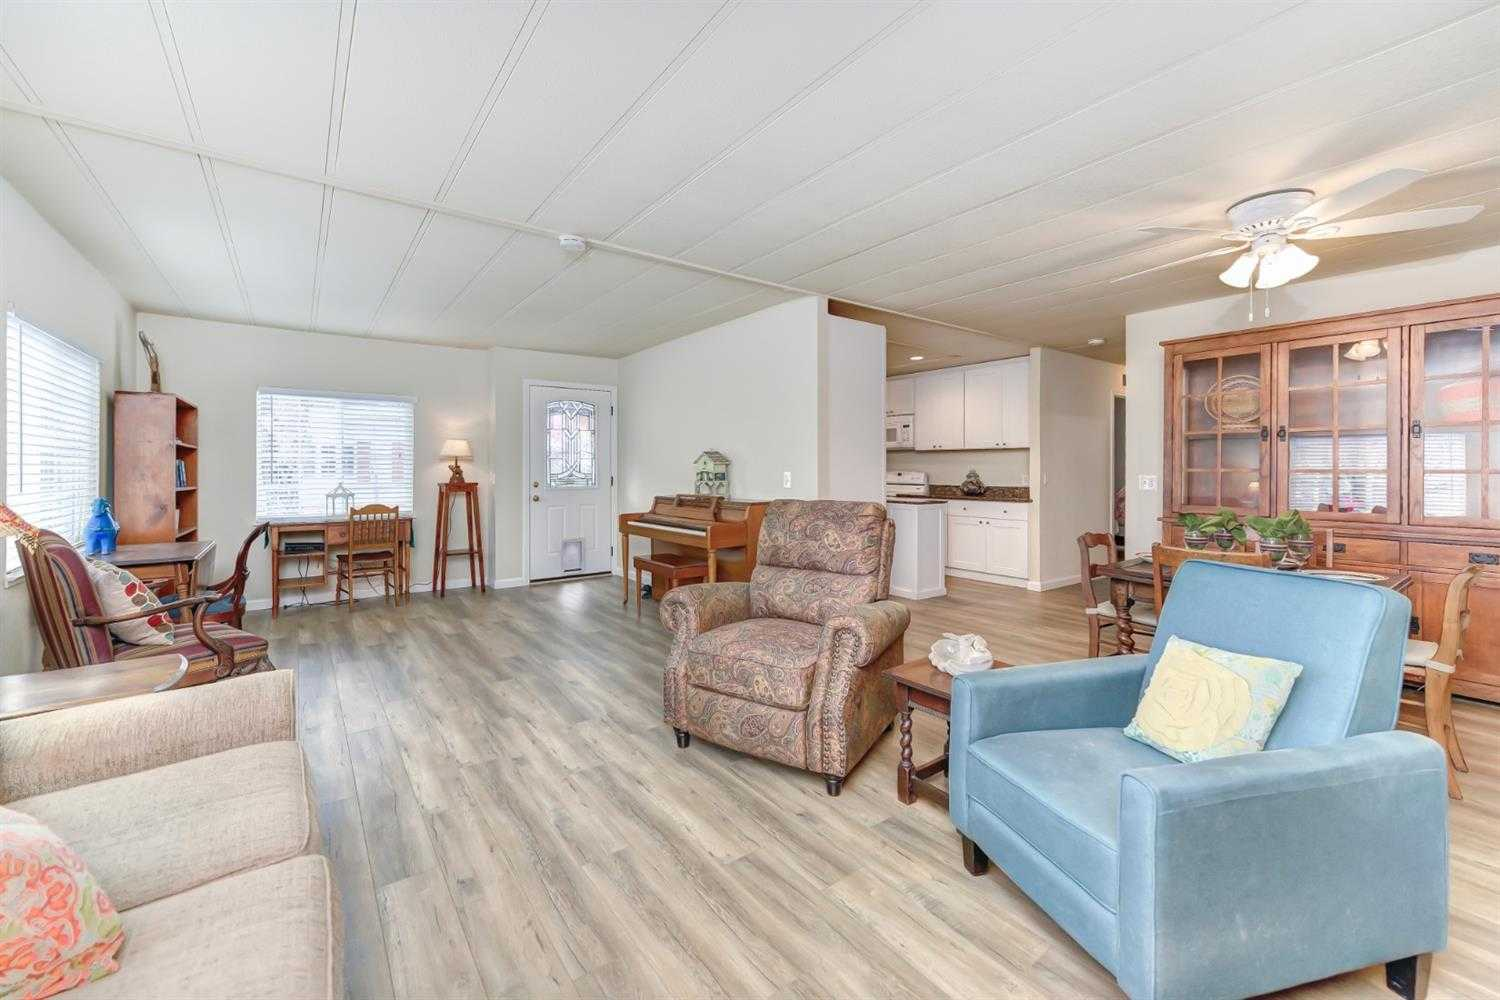 $179,900 - 2Br/2Ba -  for Sale in Cameron Park